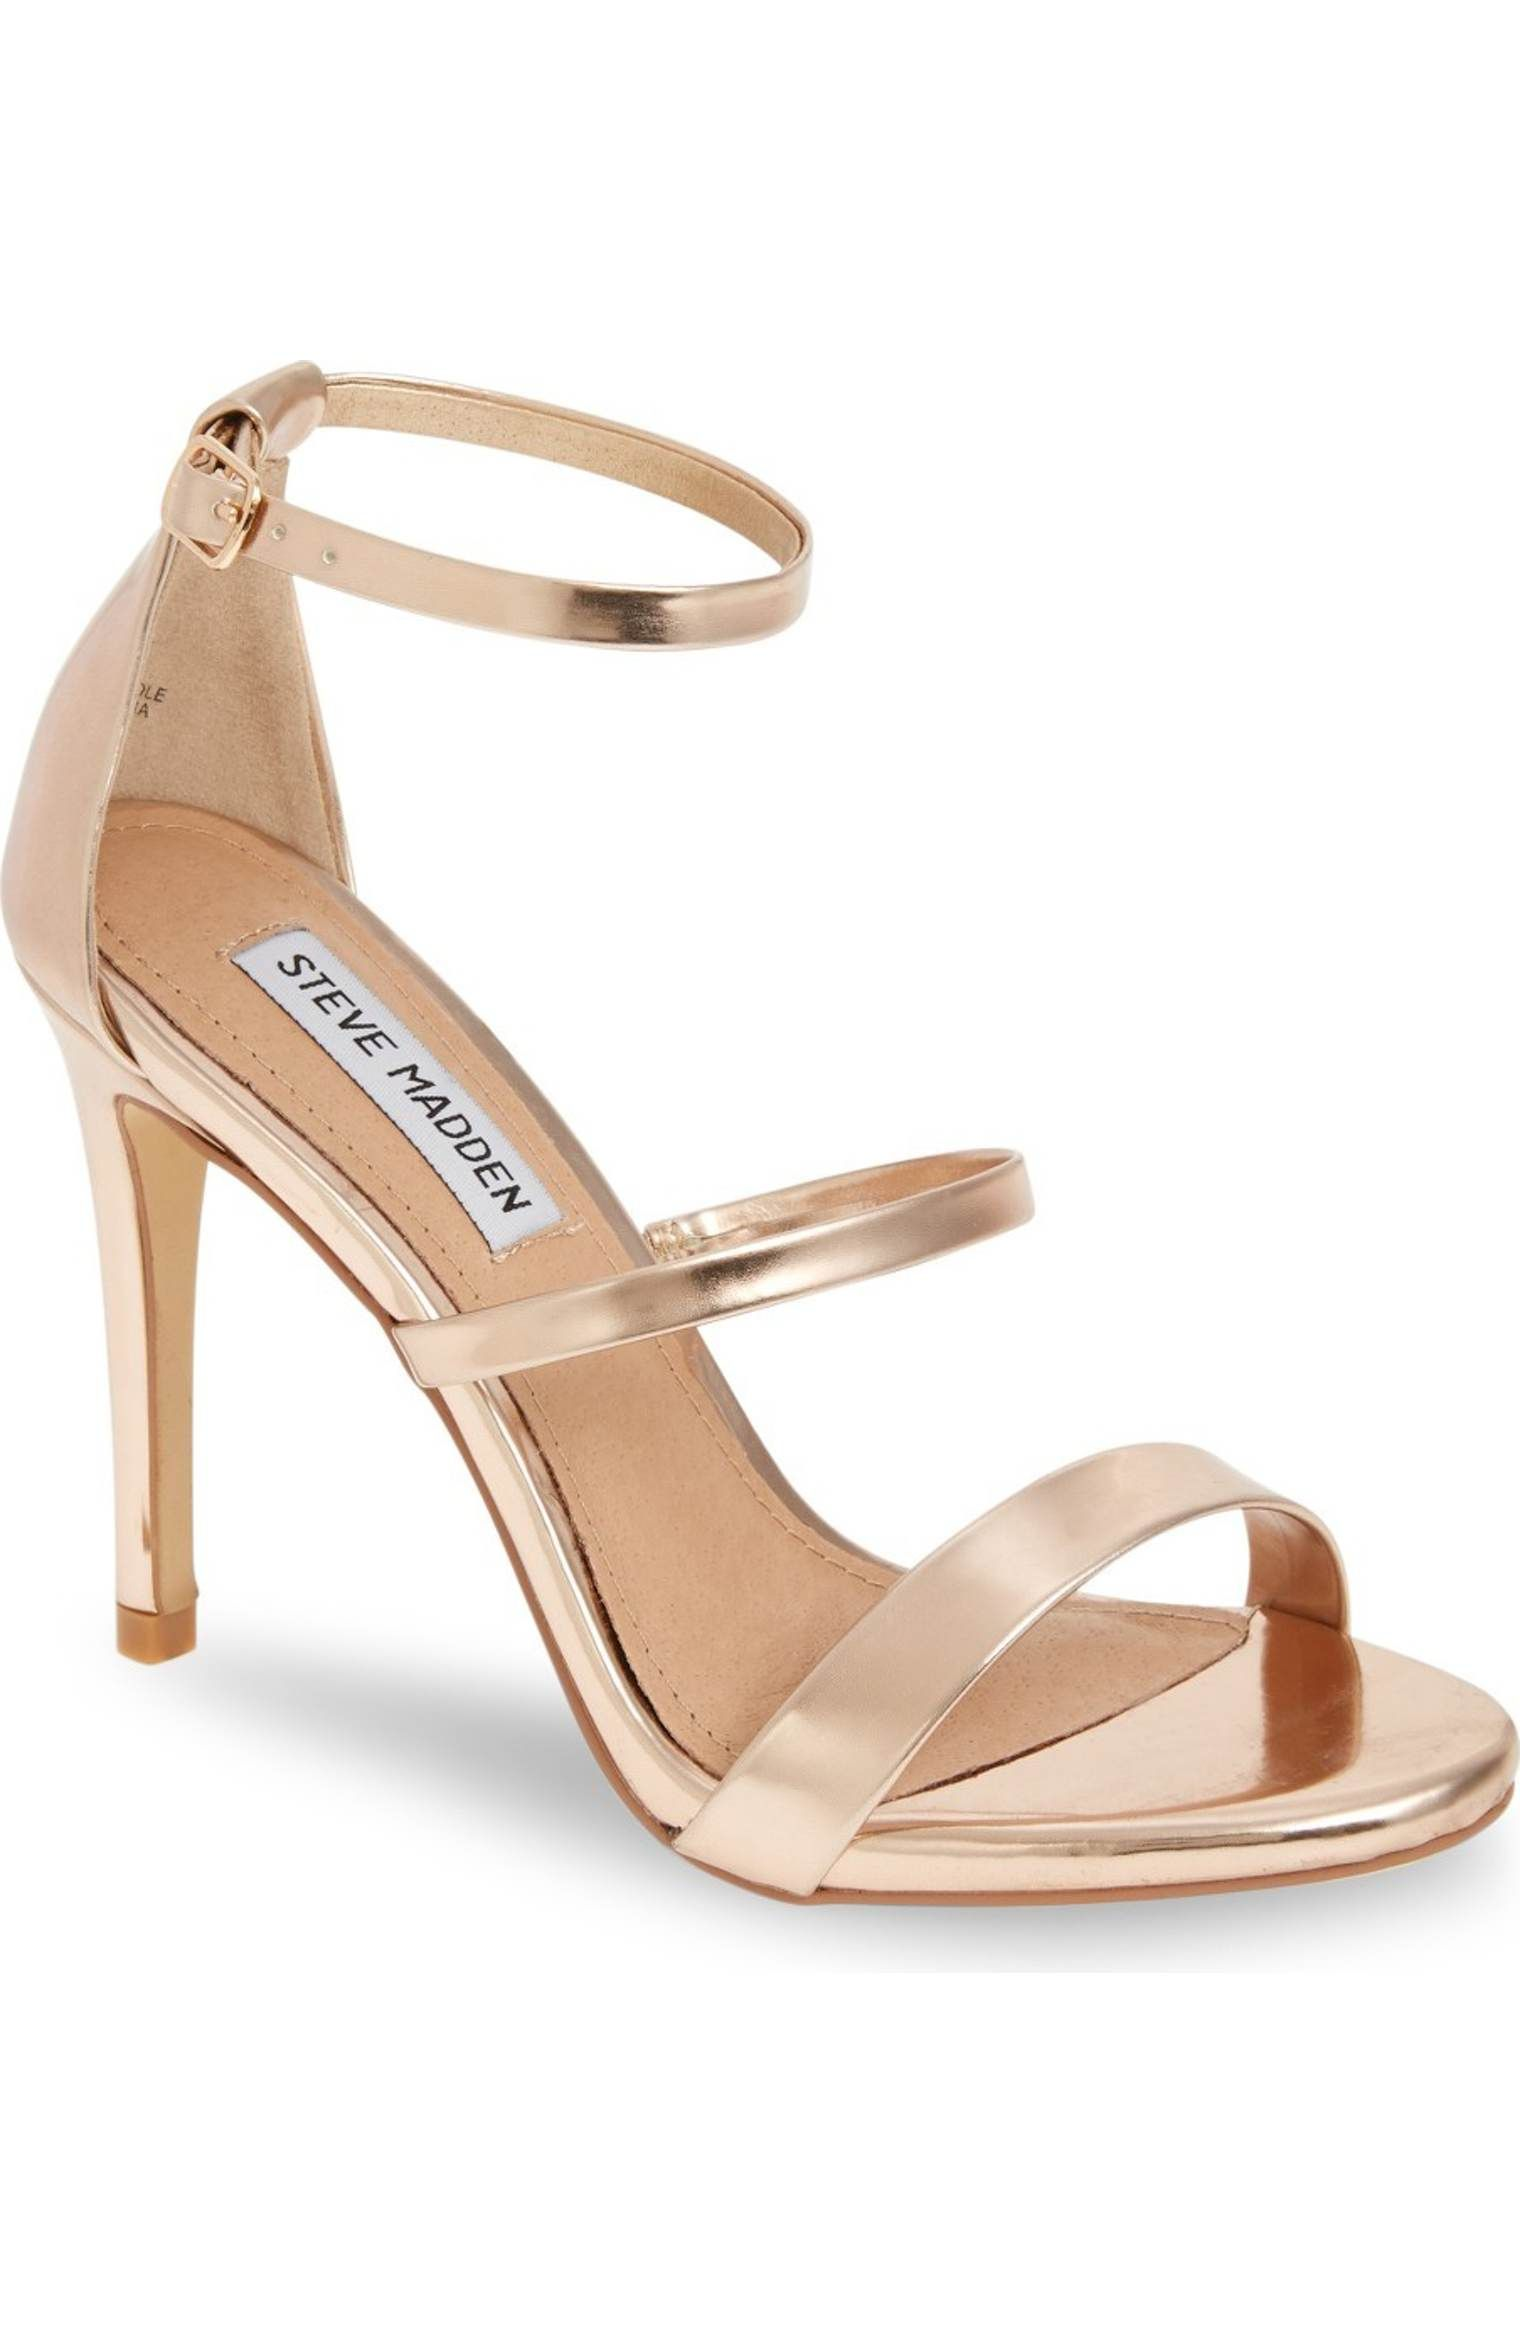 0781ee663a4 Main Image - Steve Madden Sheena Strappy Sandal (Women)